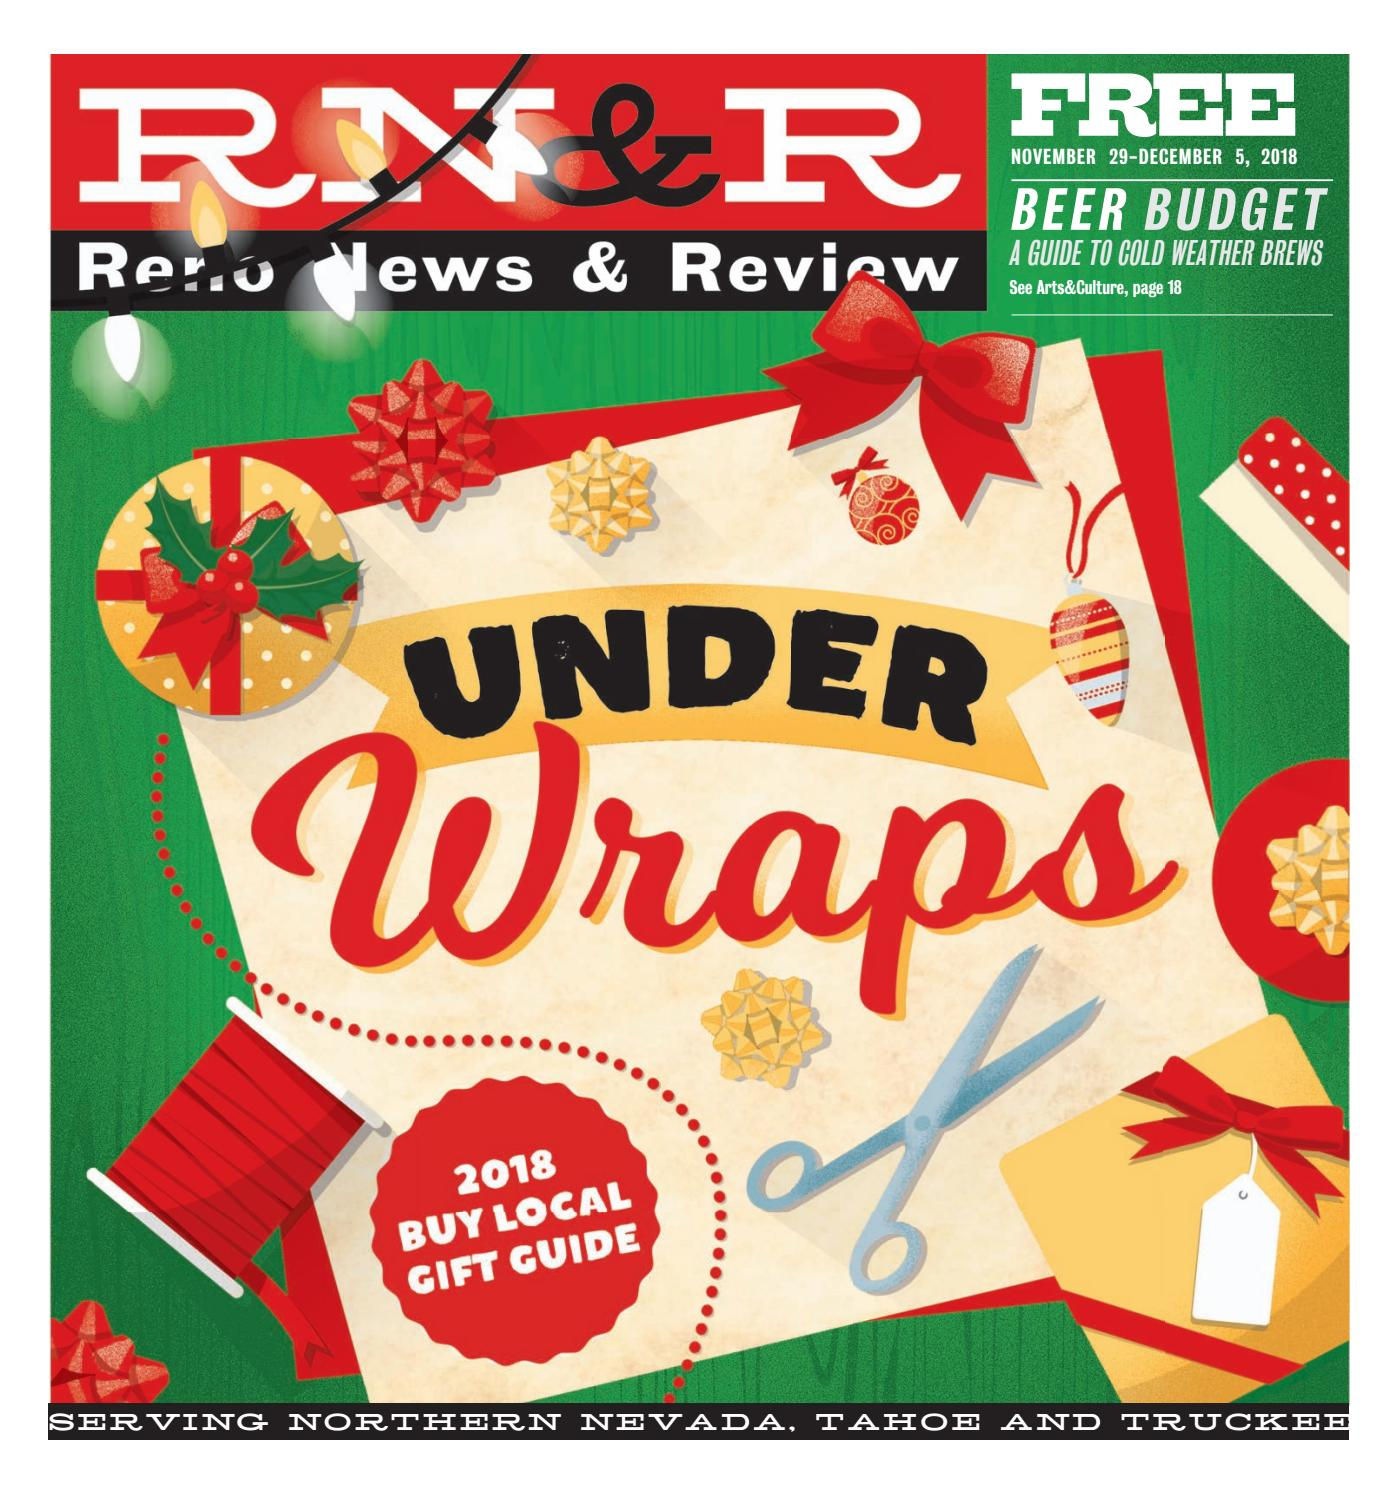 r 2018 11 29 by News & Review issuu